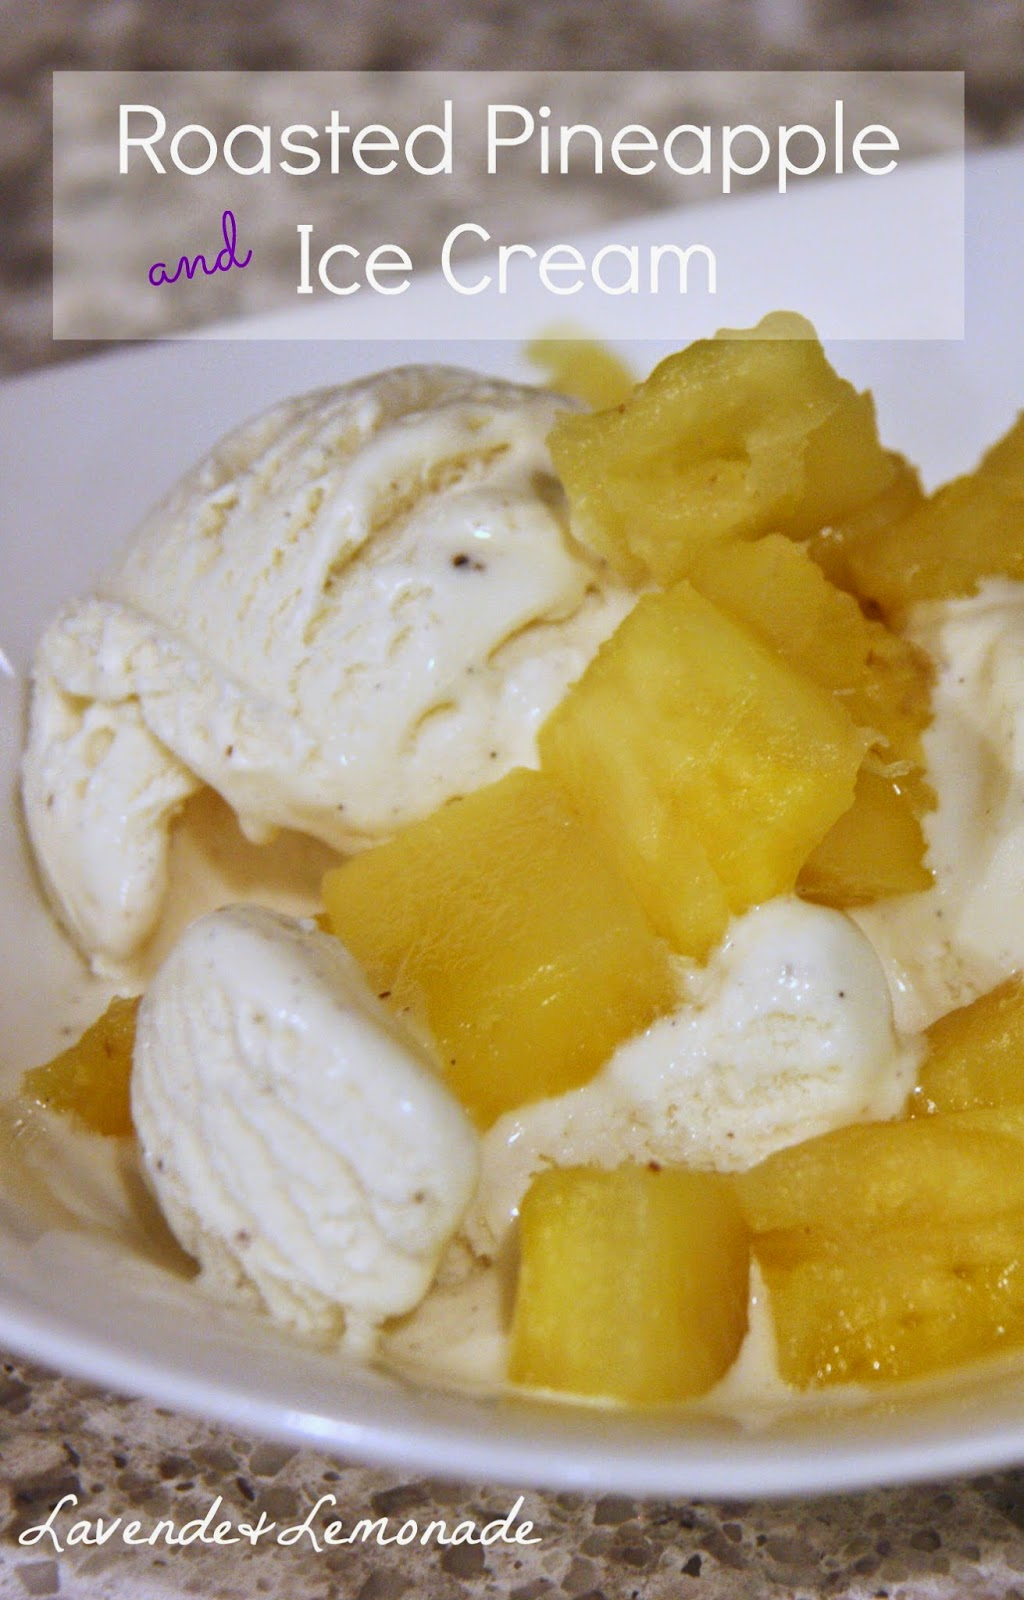 Roasted Pineapple and Ice Cream